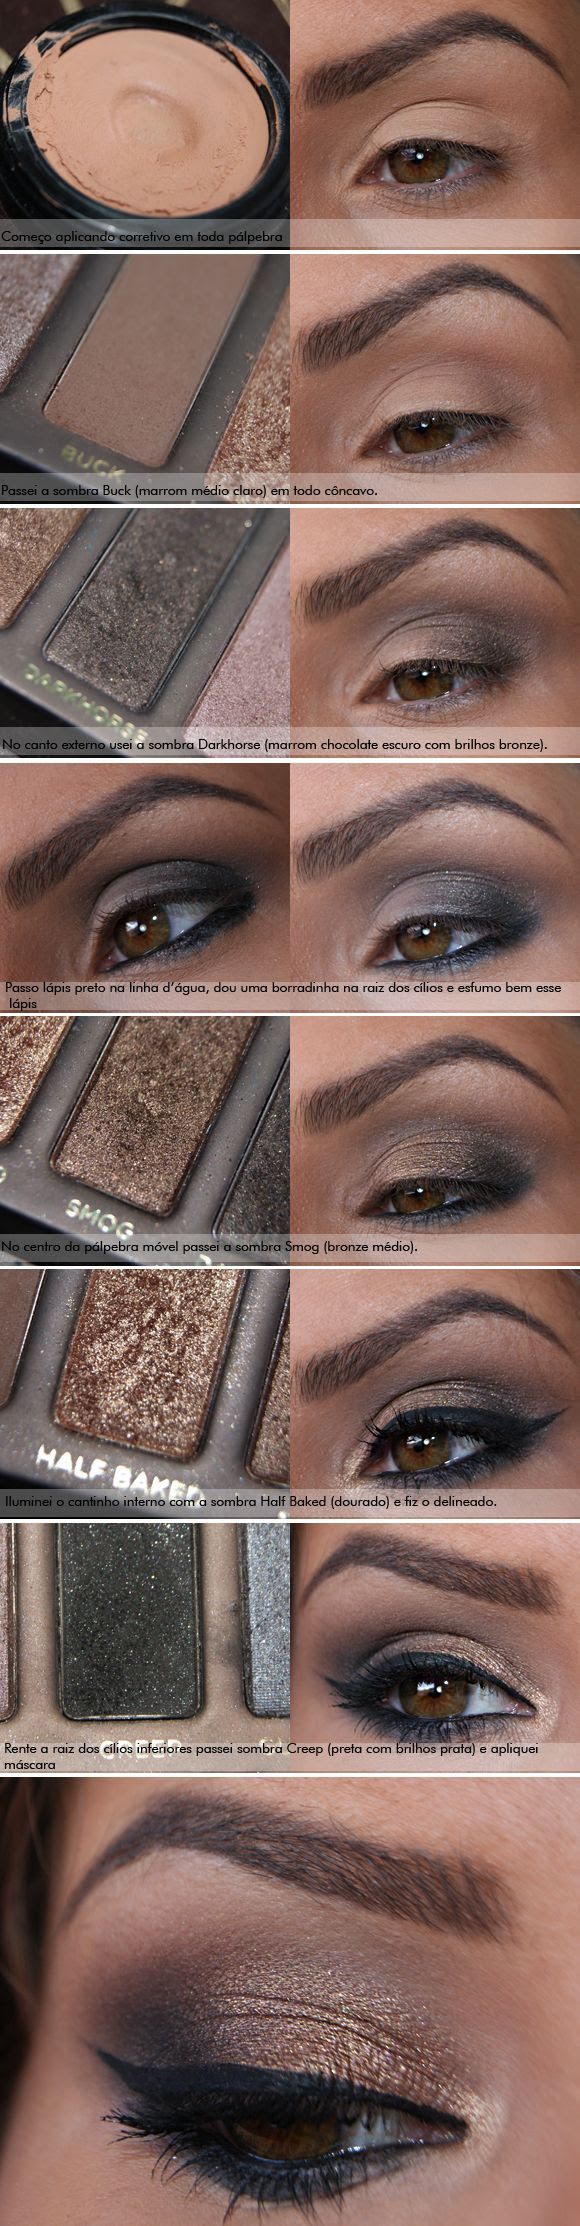 Naked urban decay eye shadow tutorial.  Click the website to see how I lost 21 pounds in one month with free trials